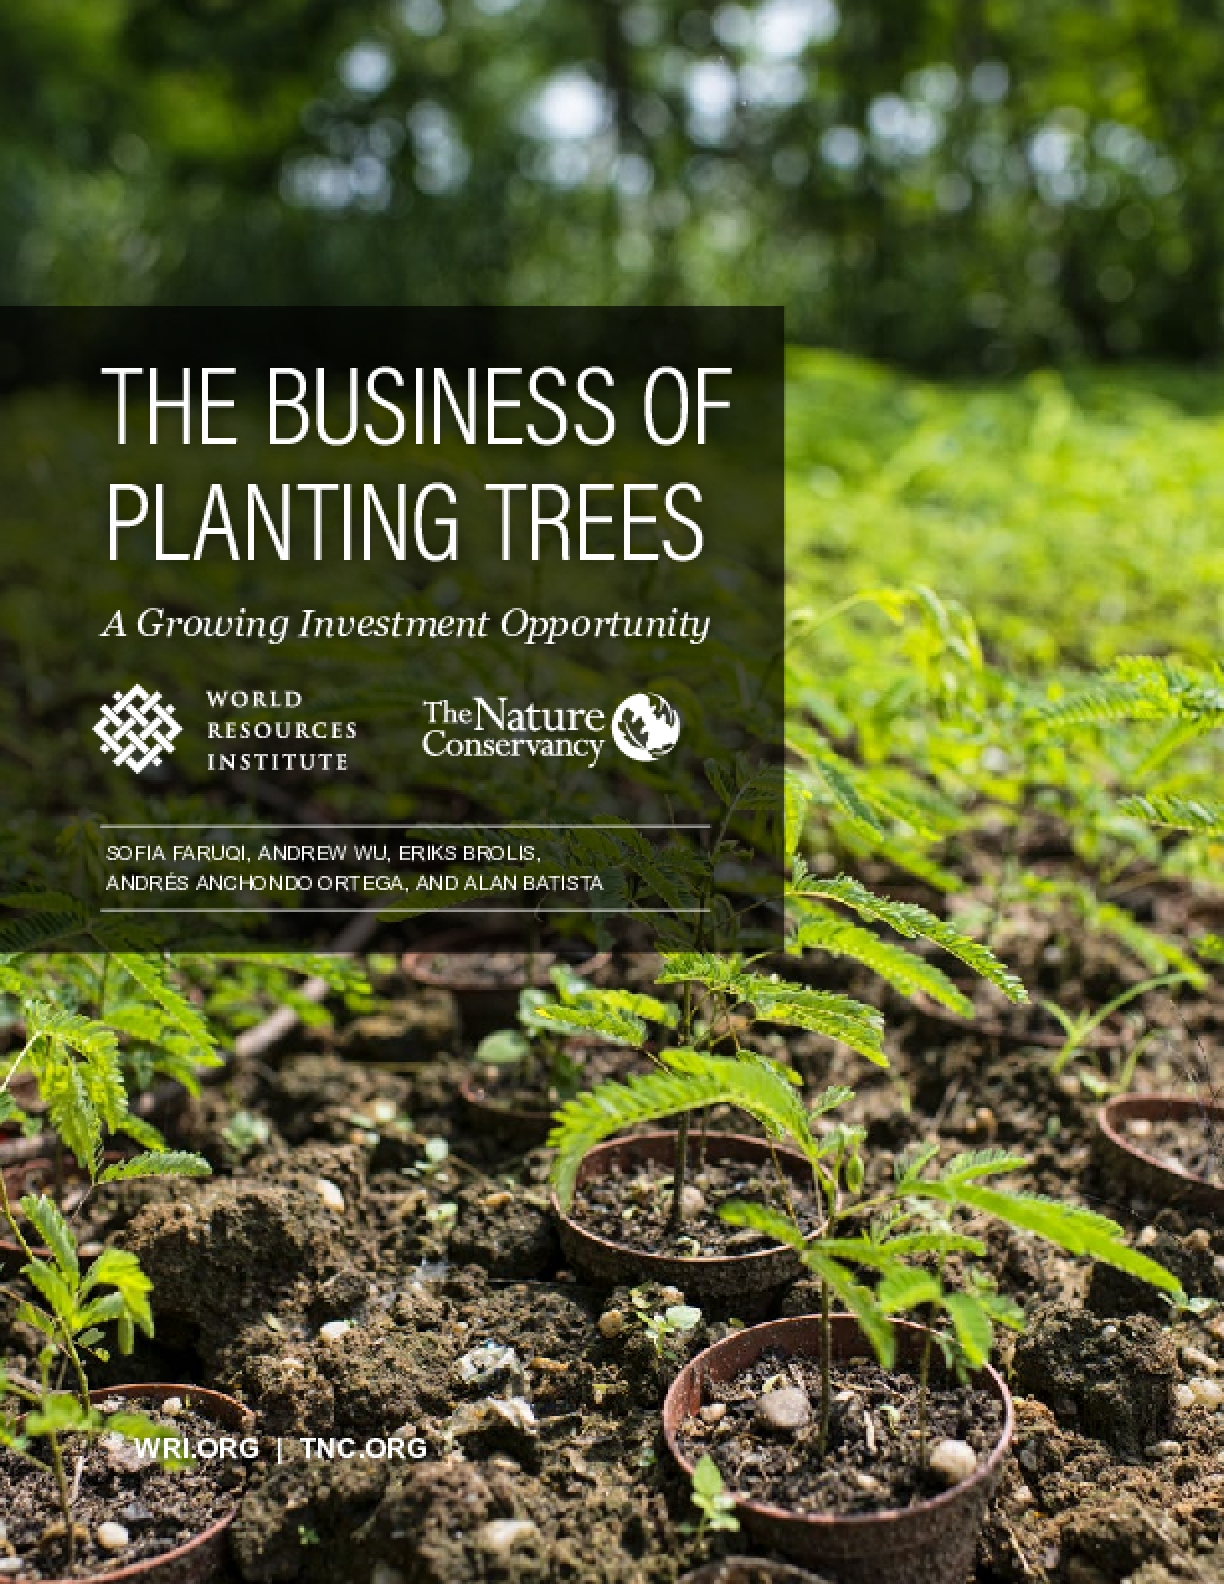 The Business of Planting Trees: A Growing Investment Opportunity